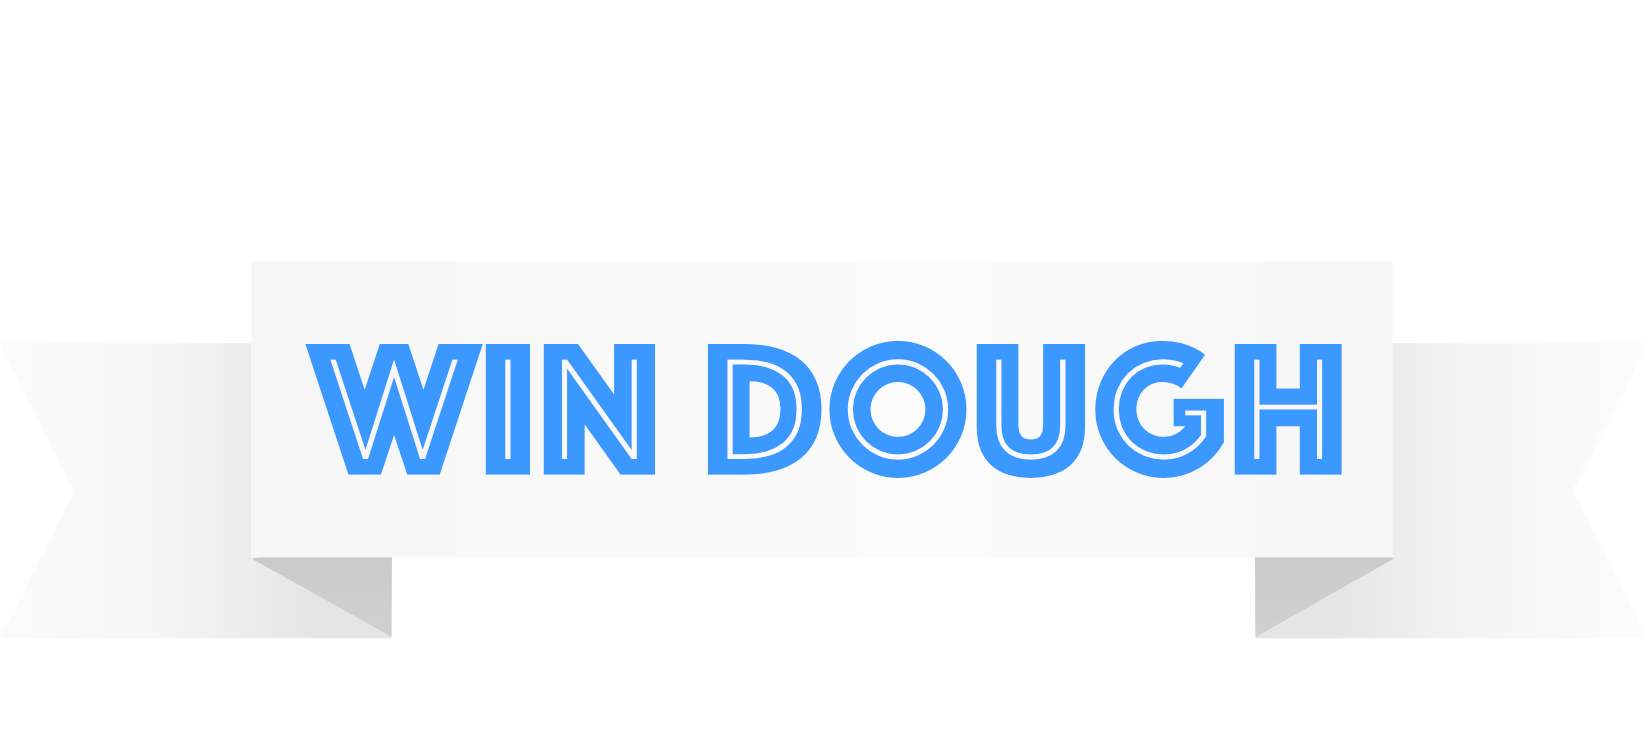 WIN DOUGH by READYsweeps